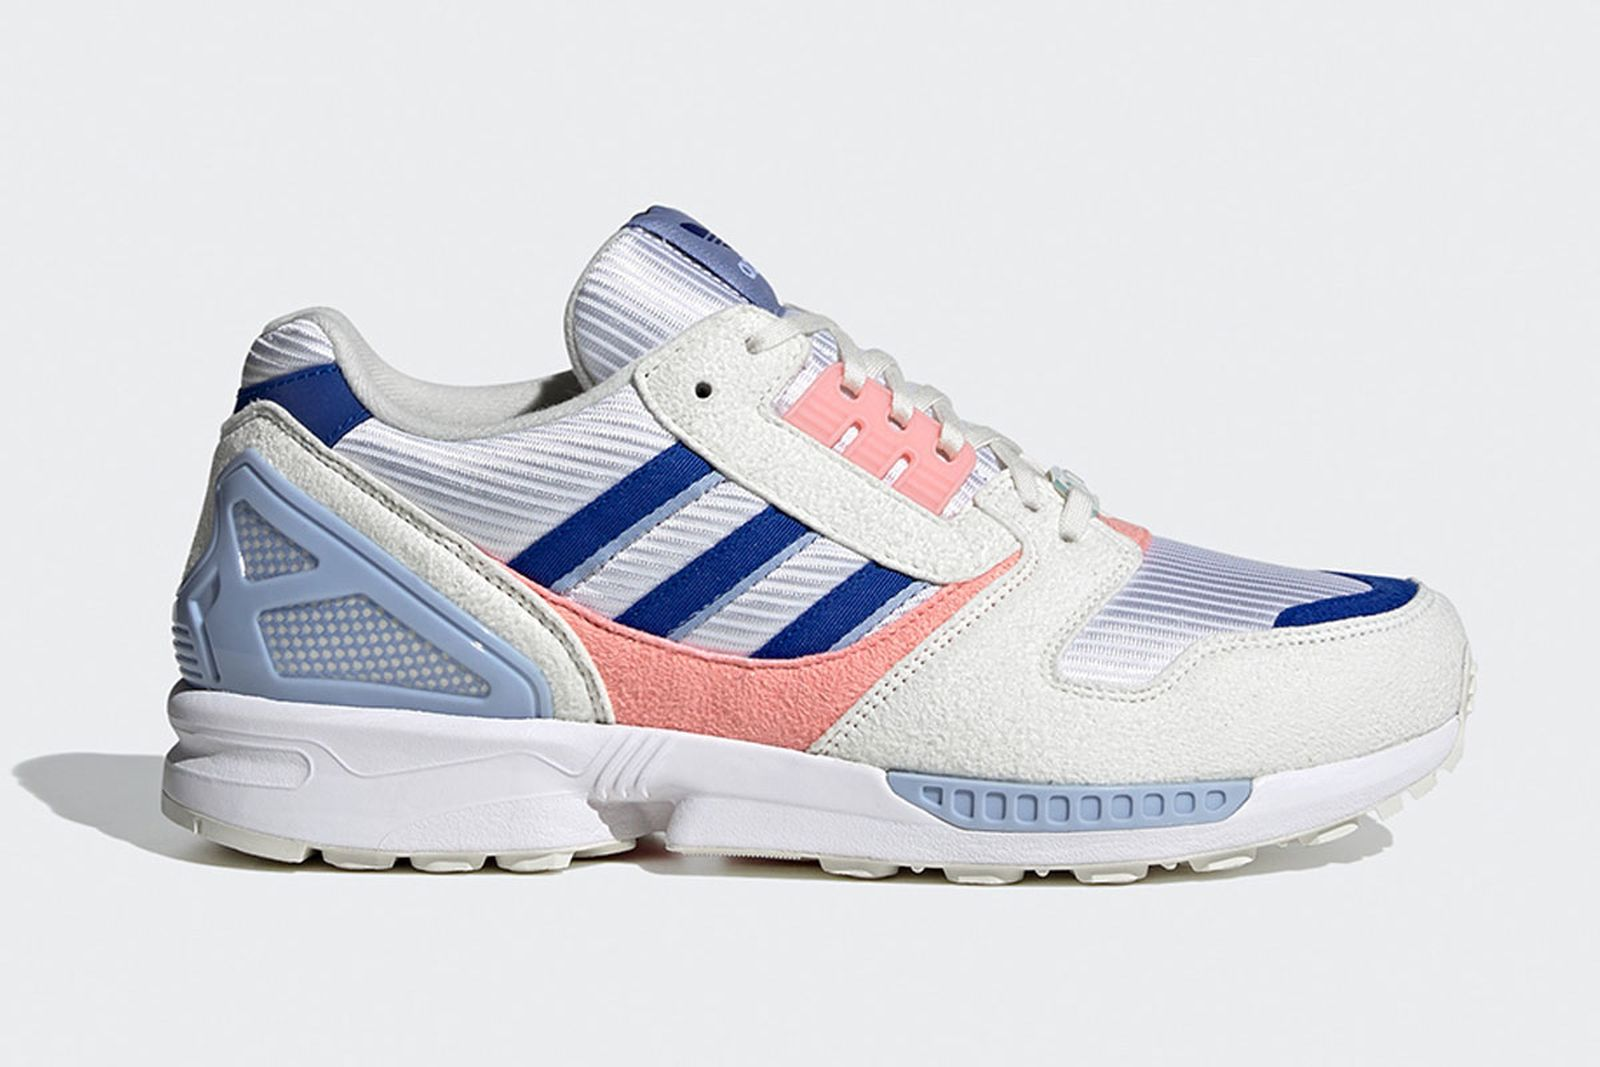 """adidas ZX 8000 """"Blue/Pink"""": Official Images & Rumored Release Info"""